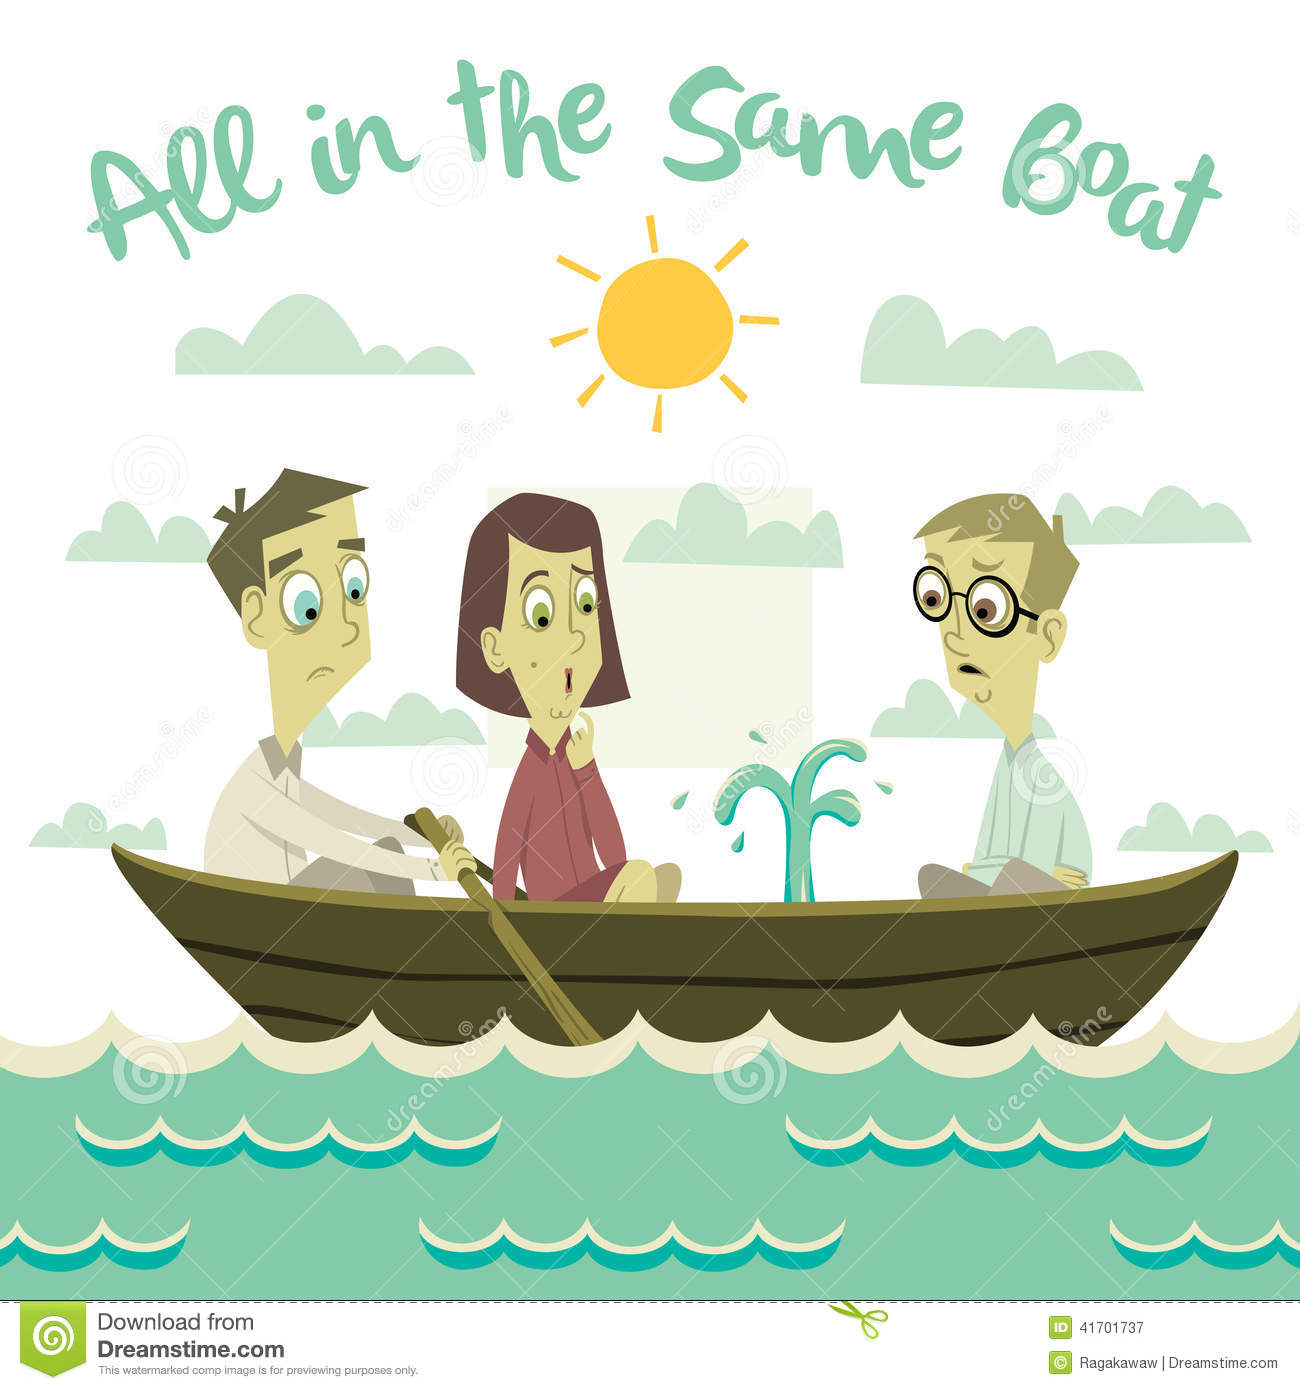 All In The Same Boat Illustration Stock Vector - Image: 41701737